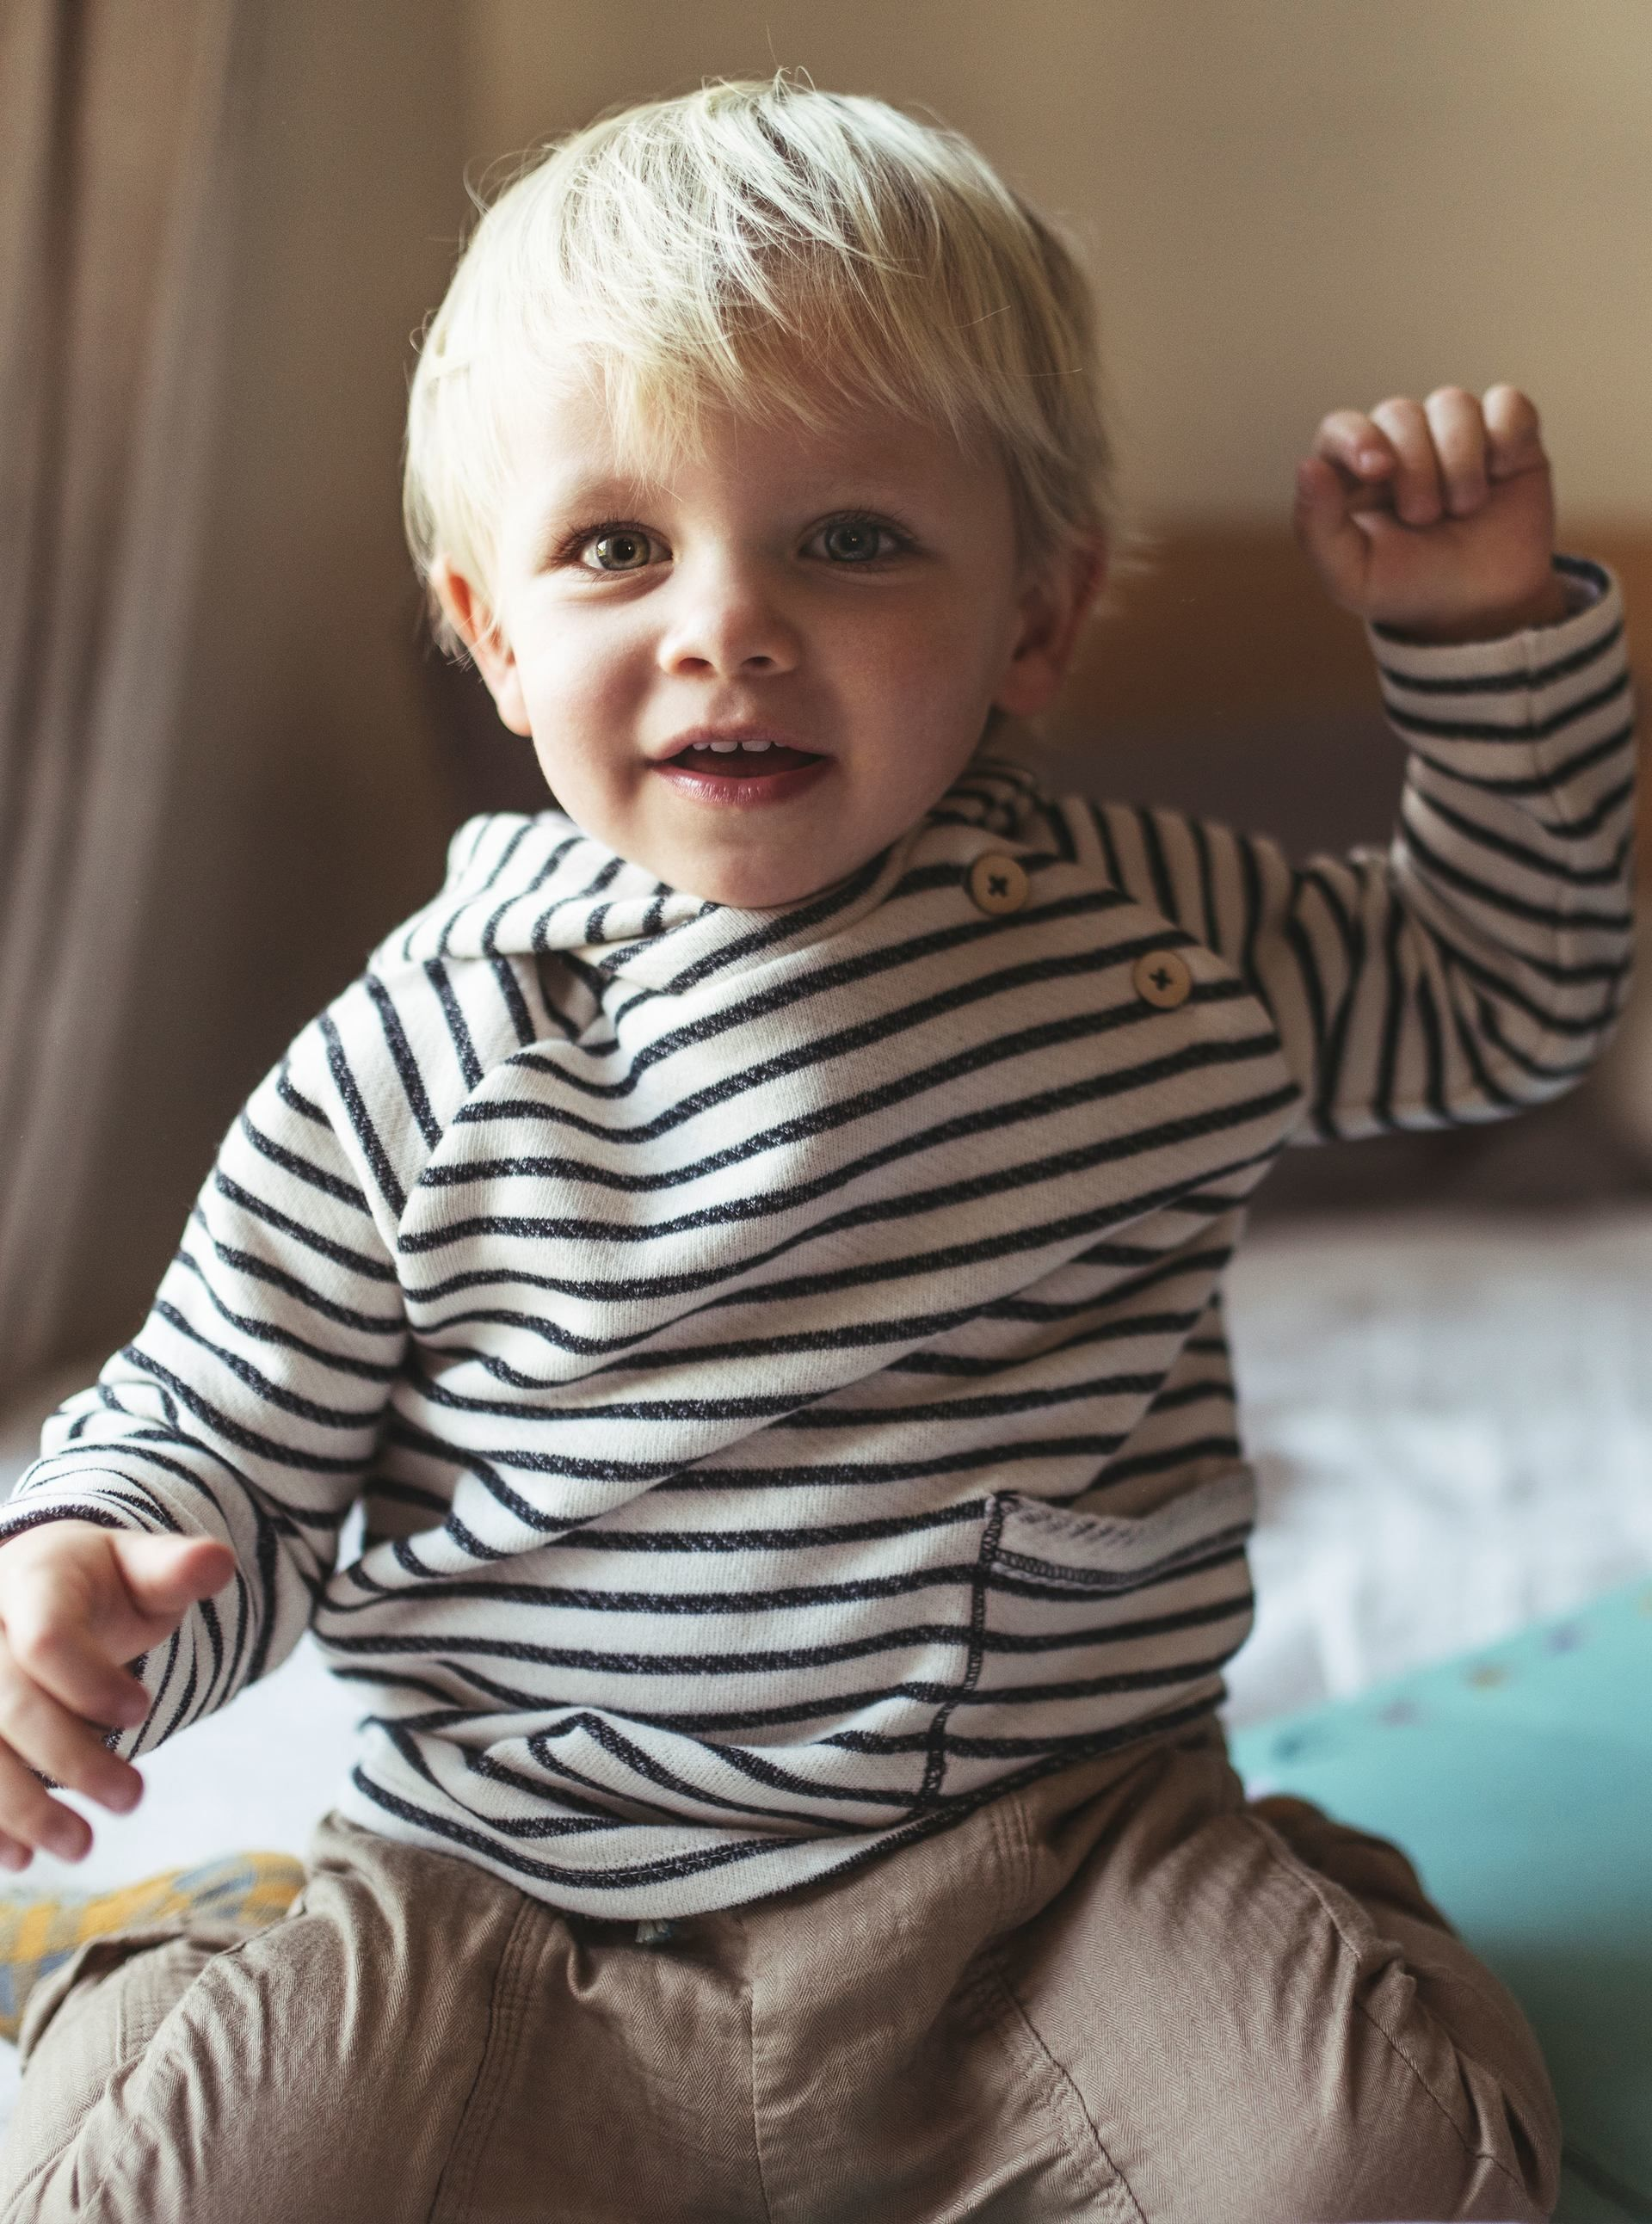 Image 1 Of From Zara With Images Blonde Baby Boy Blonde